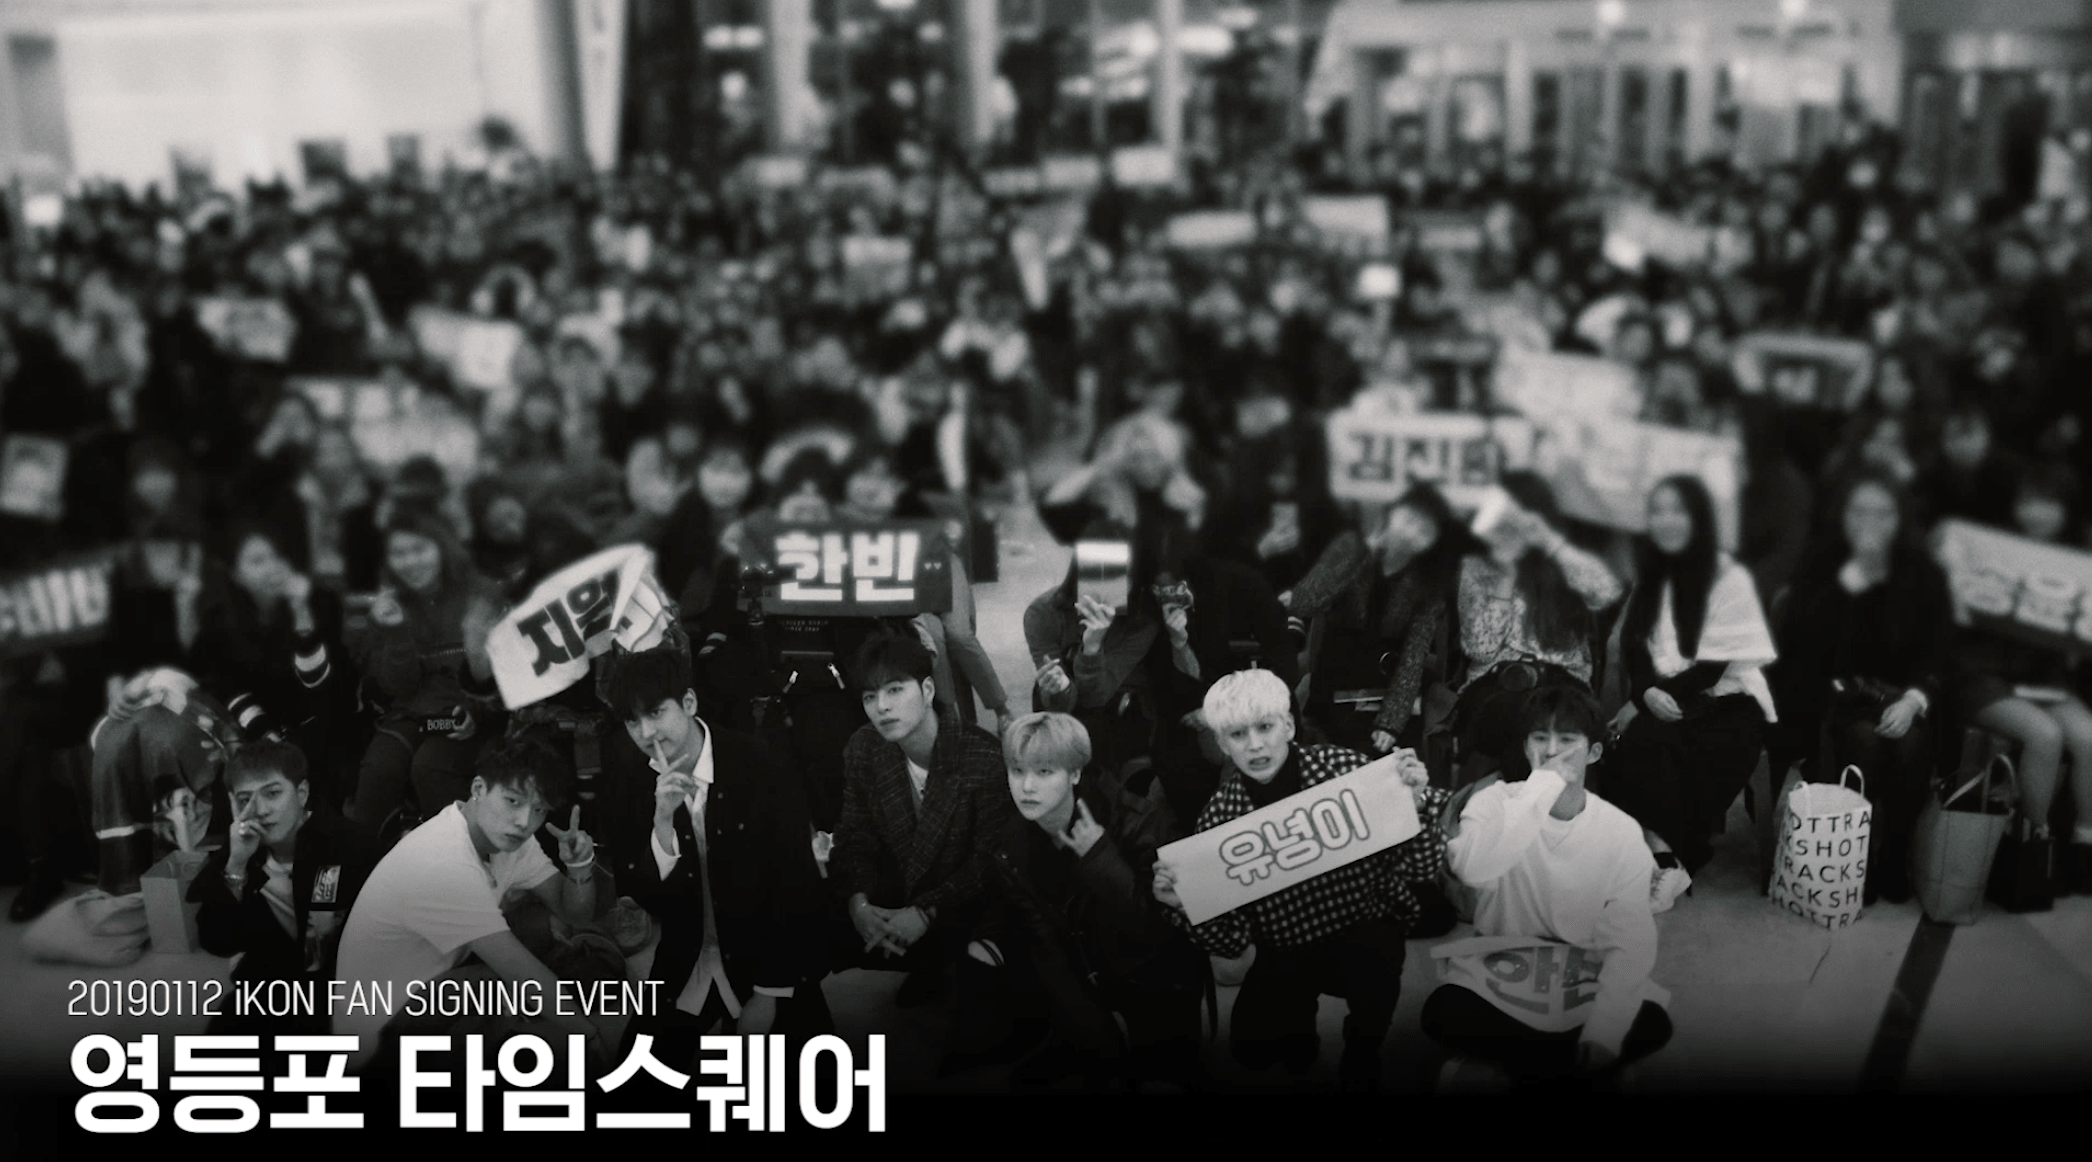 iKON - 'THE NEW KIDS' FAN SIGNING DAY IN YEONGDEUNGPO